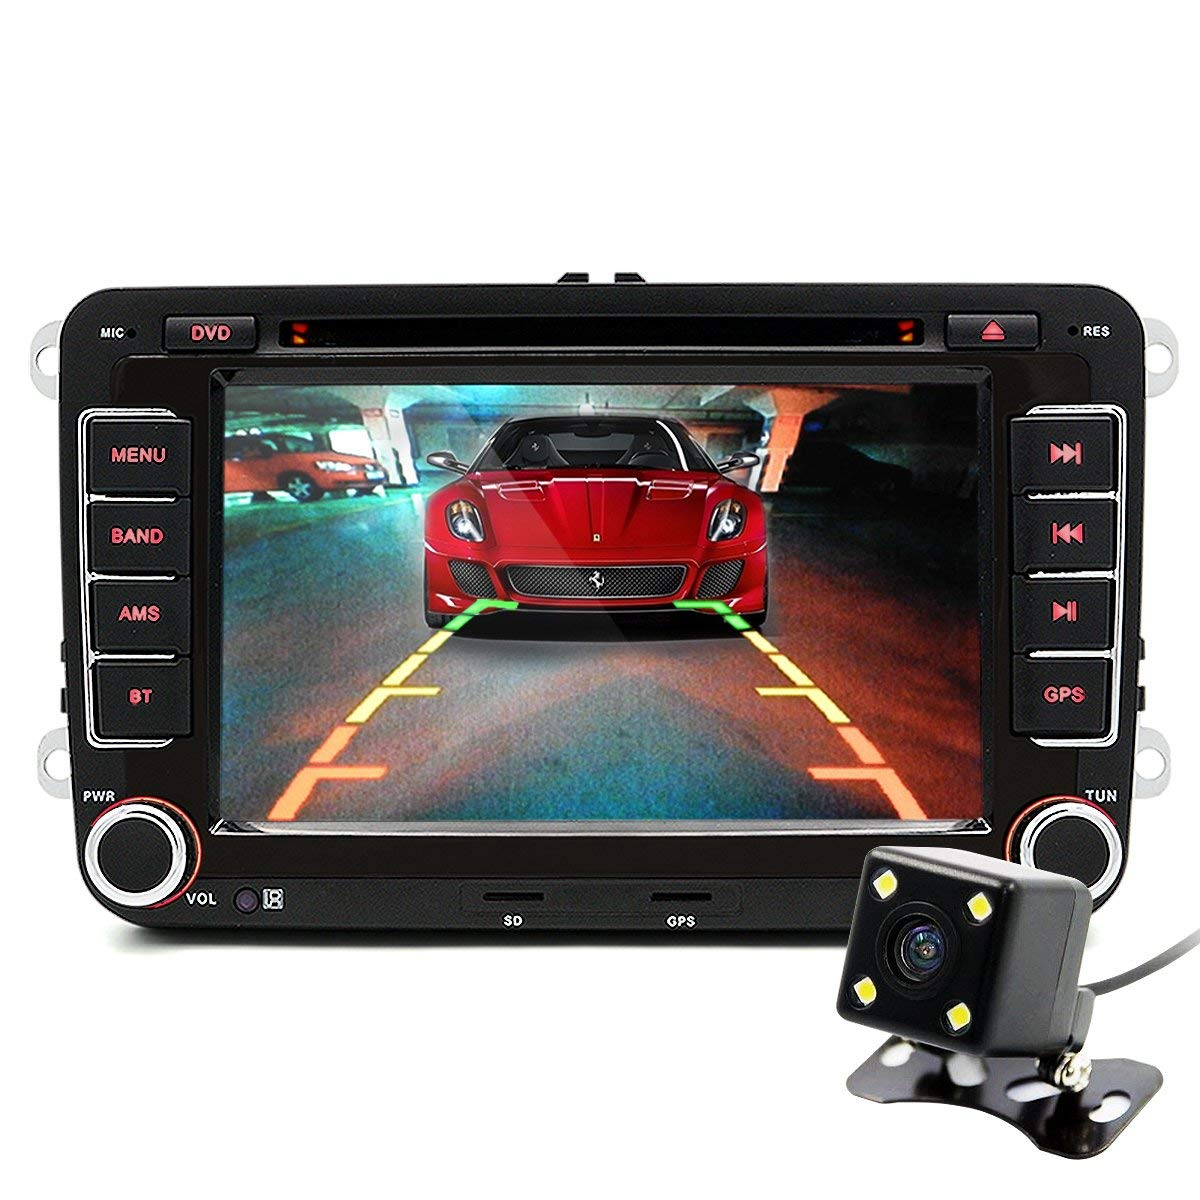 buy double din radio face plate for vw passat b5   b5 5 in 2003 jetta tdi engine 2003 jetta tdi engine 2003 jetta tdi engine 2003 jetta tdi engine